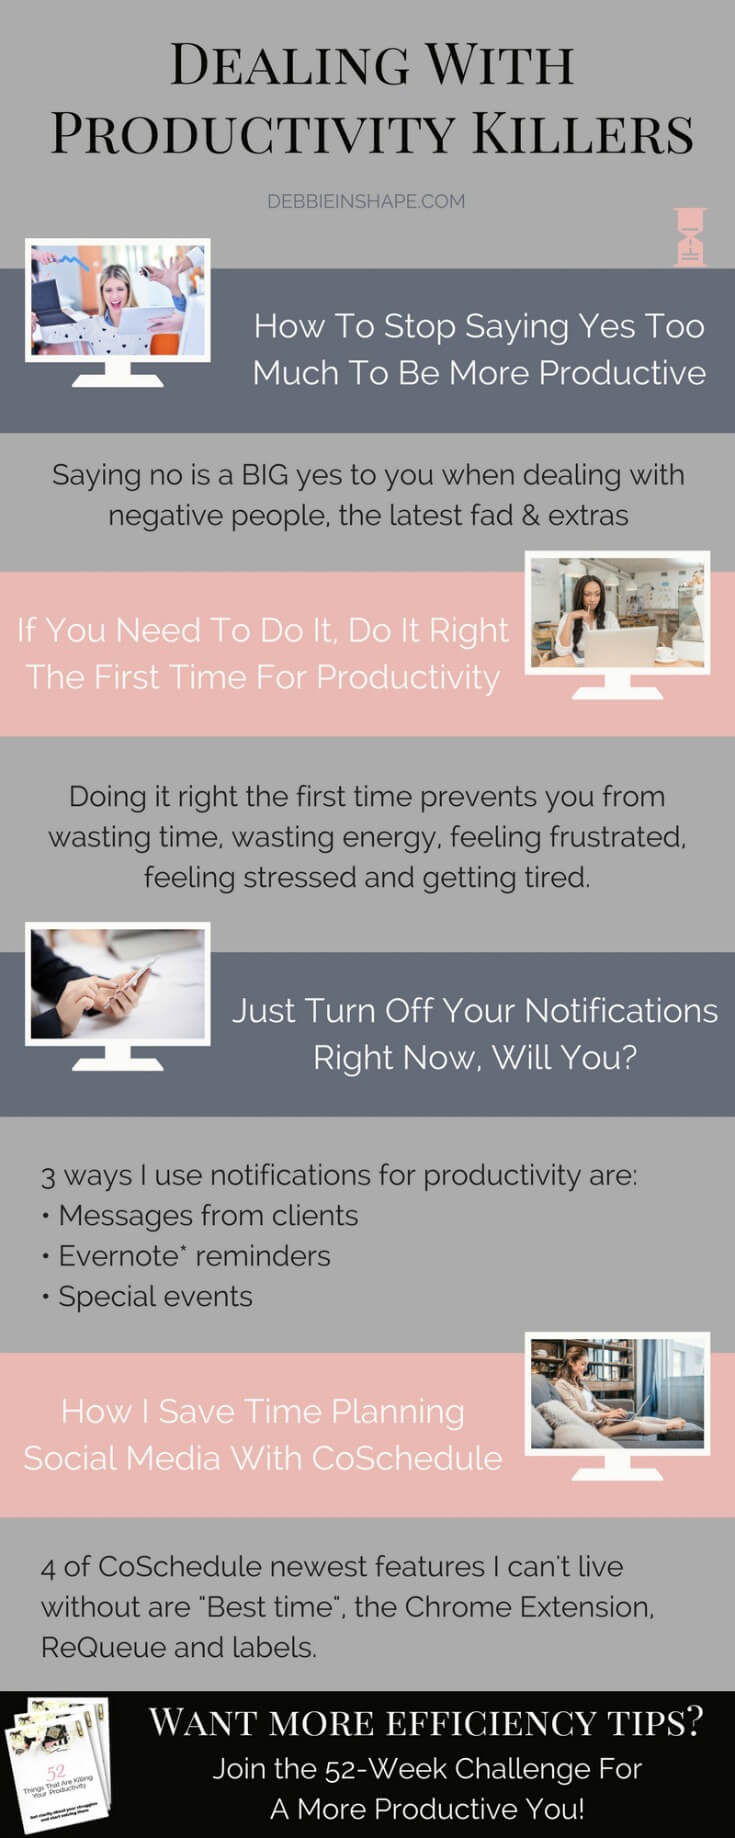 Be a productivity ninja with these super easy tips. Why fighting efficiency killers when you can use them to your favor? Find out how I take control of distractions like social media to overcome procrastination and get a lot done. Join the 52-Week Challenge For A More Productive You for daily prompts and to become part of an awesome community of like-minded achievers.